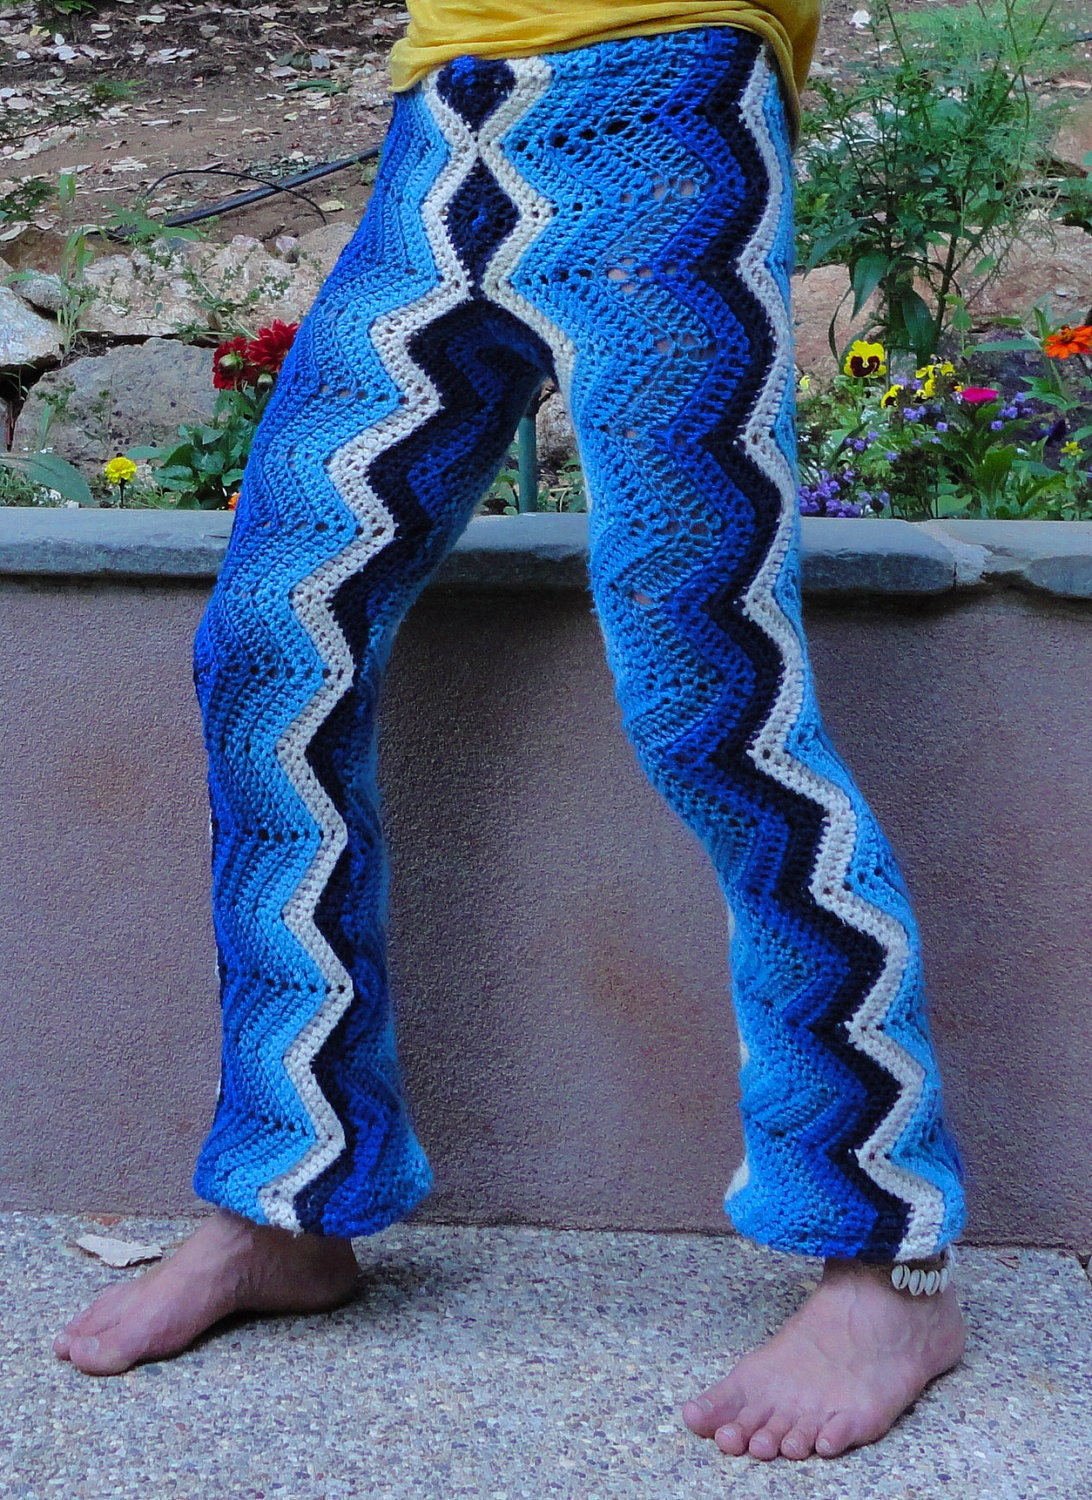 Crochet Pants : Deep Indigo Funky Crochet Afghan Pants 100% by LordvonSchmitt